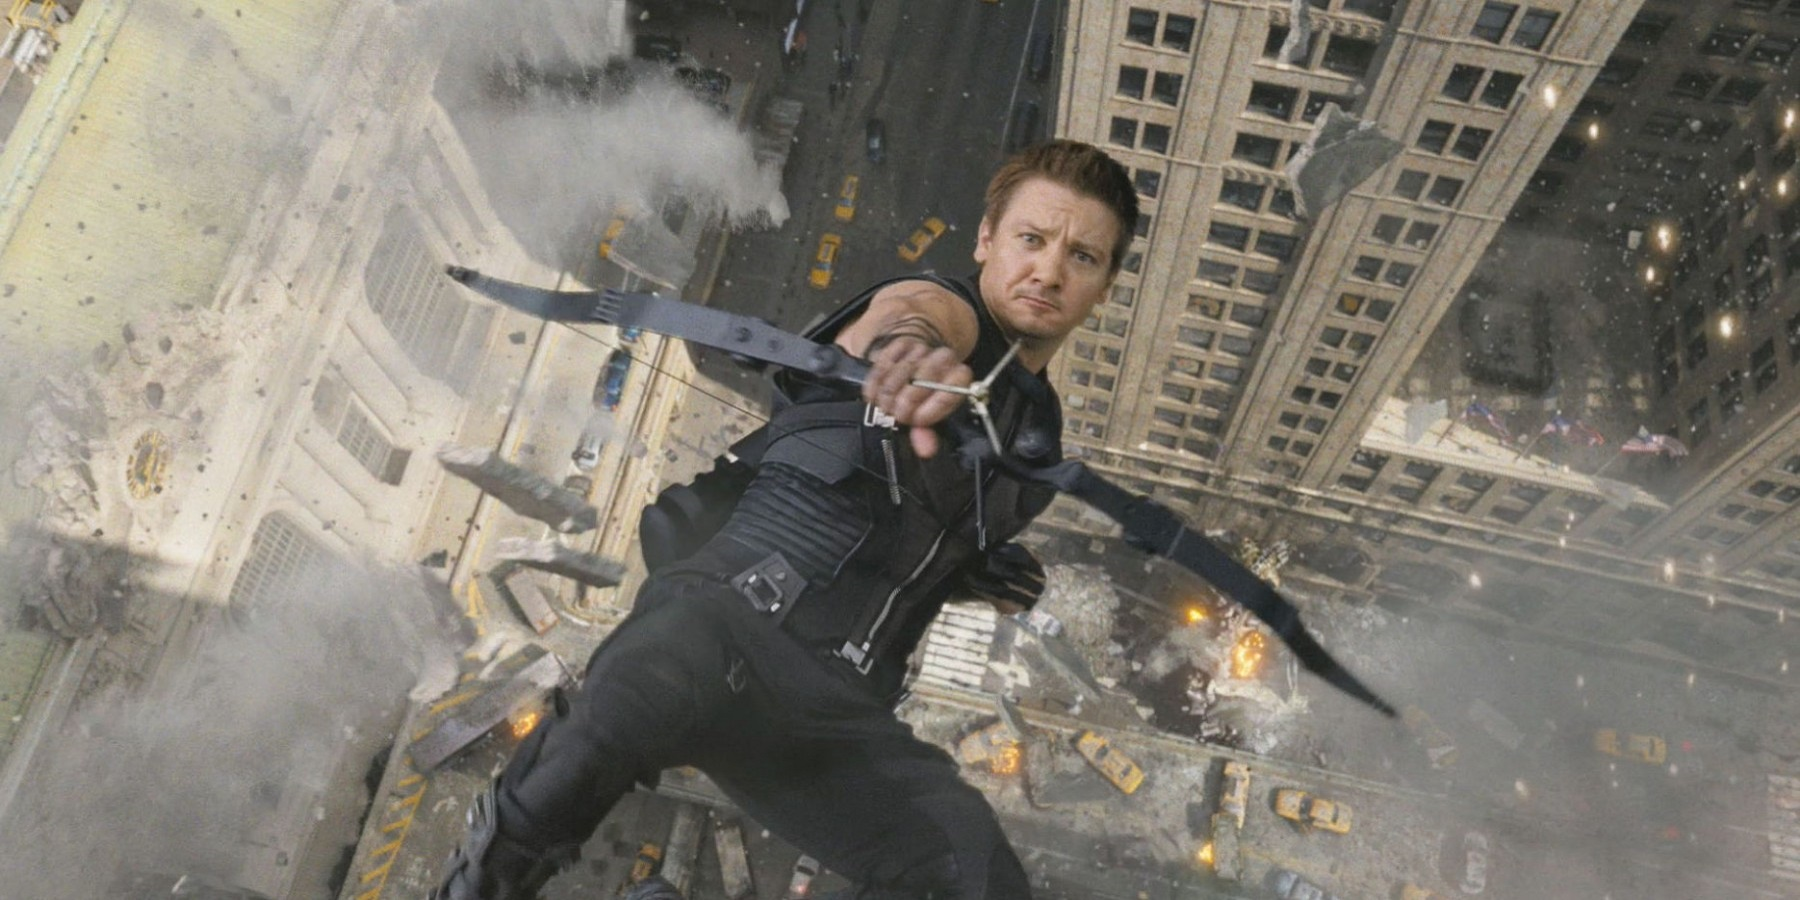 Hawkeye falling in the Avengers Jeremy Renner is Up for a Hawkeye Marvel Netflix Series